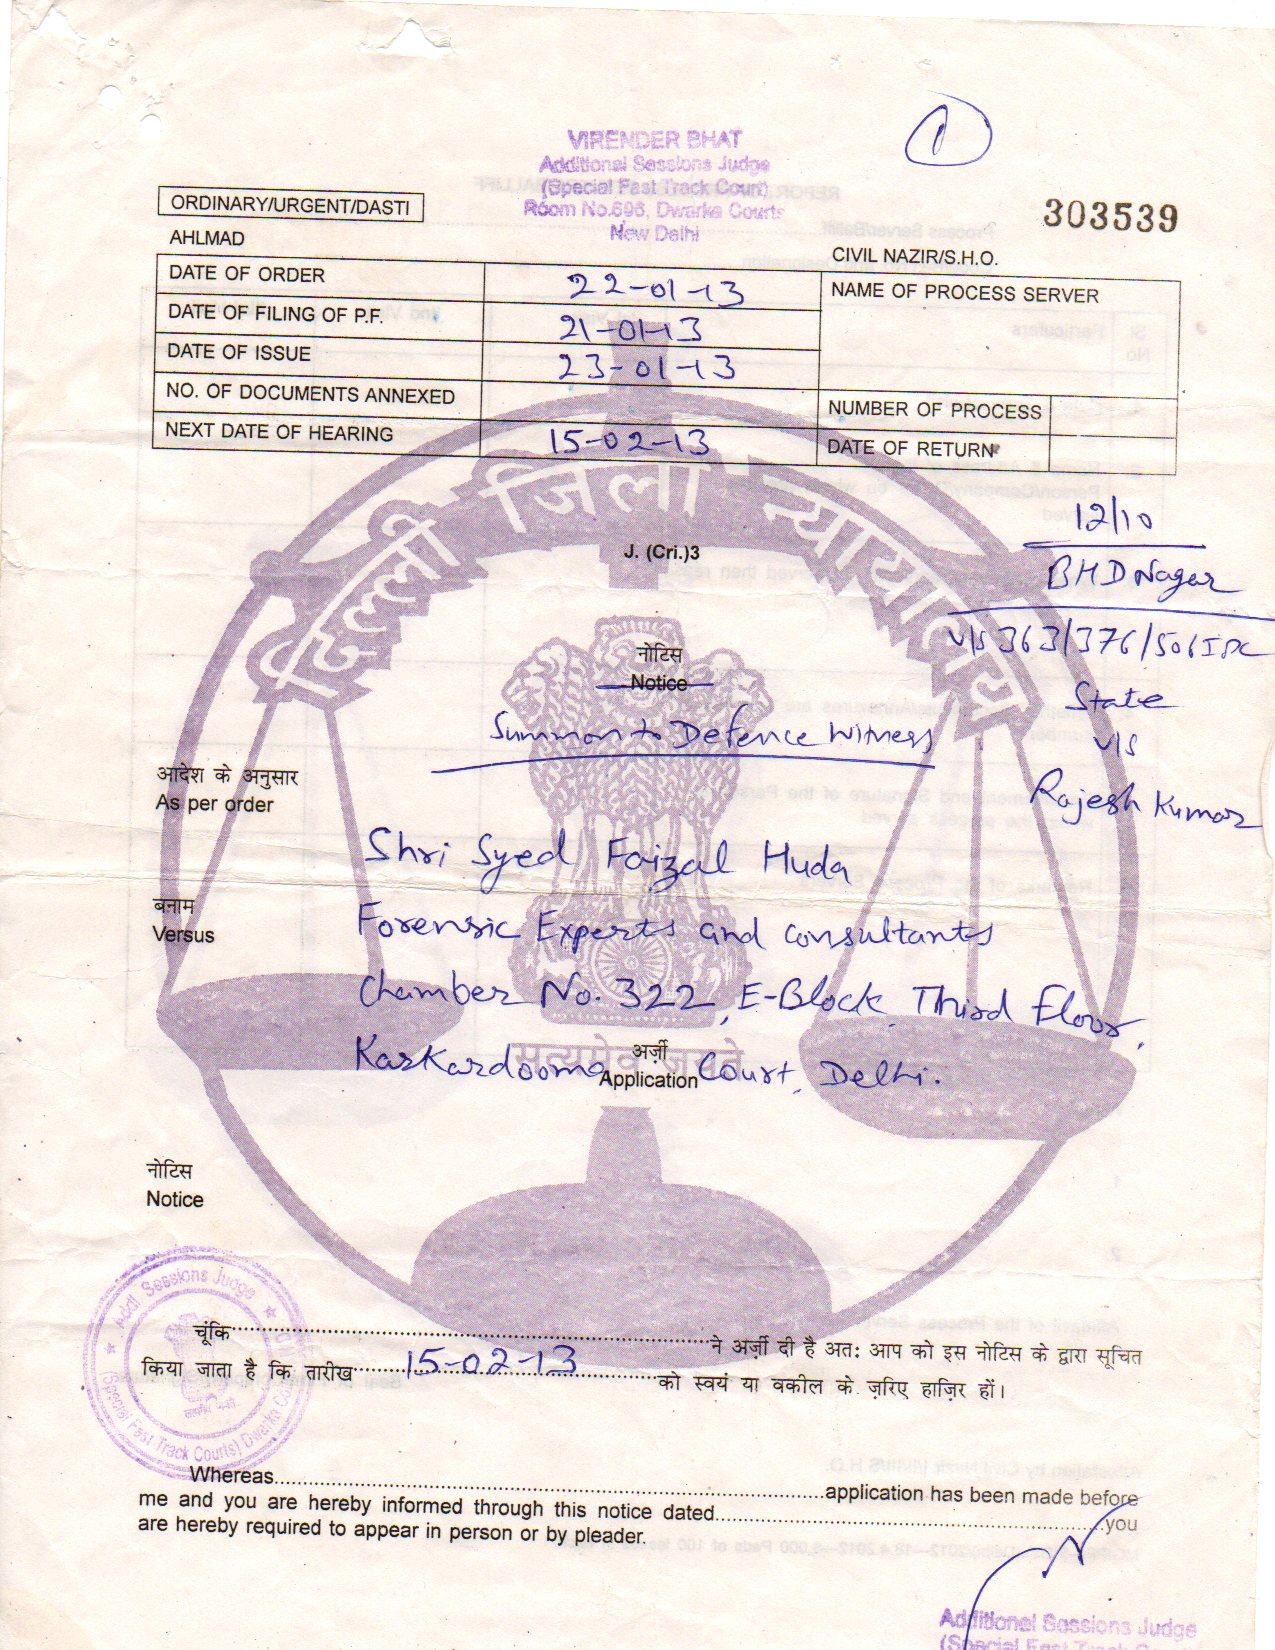 SUMMON FROM THE COURT OF SH. VIRENDRA BHATT, DWARKA